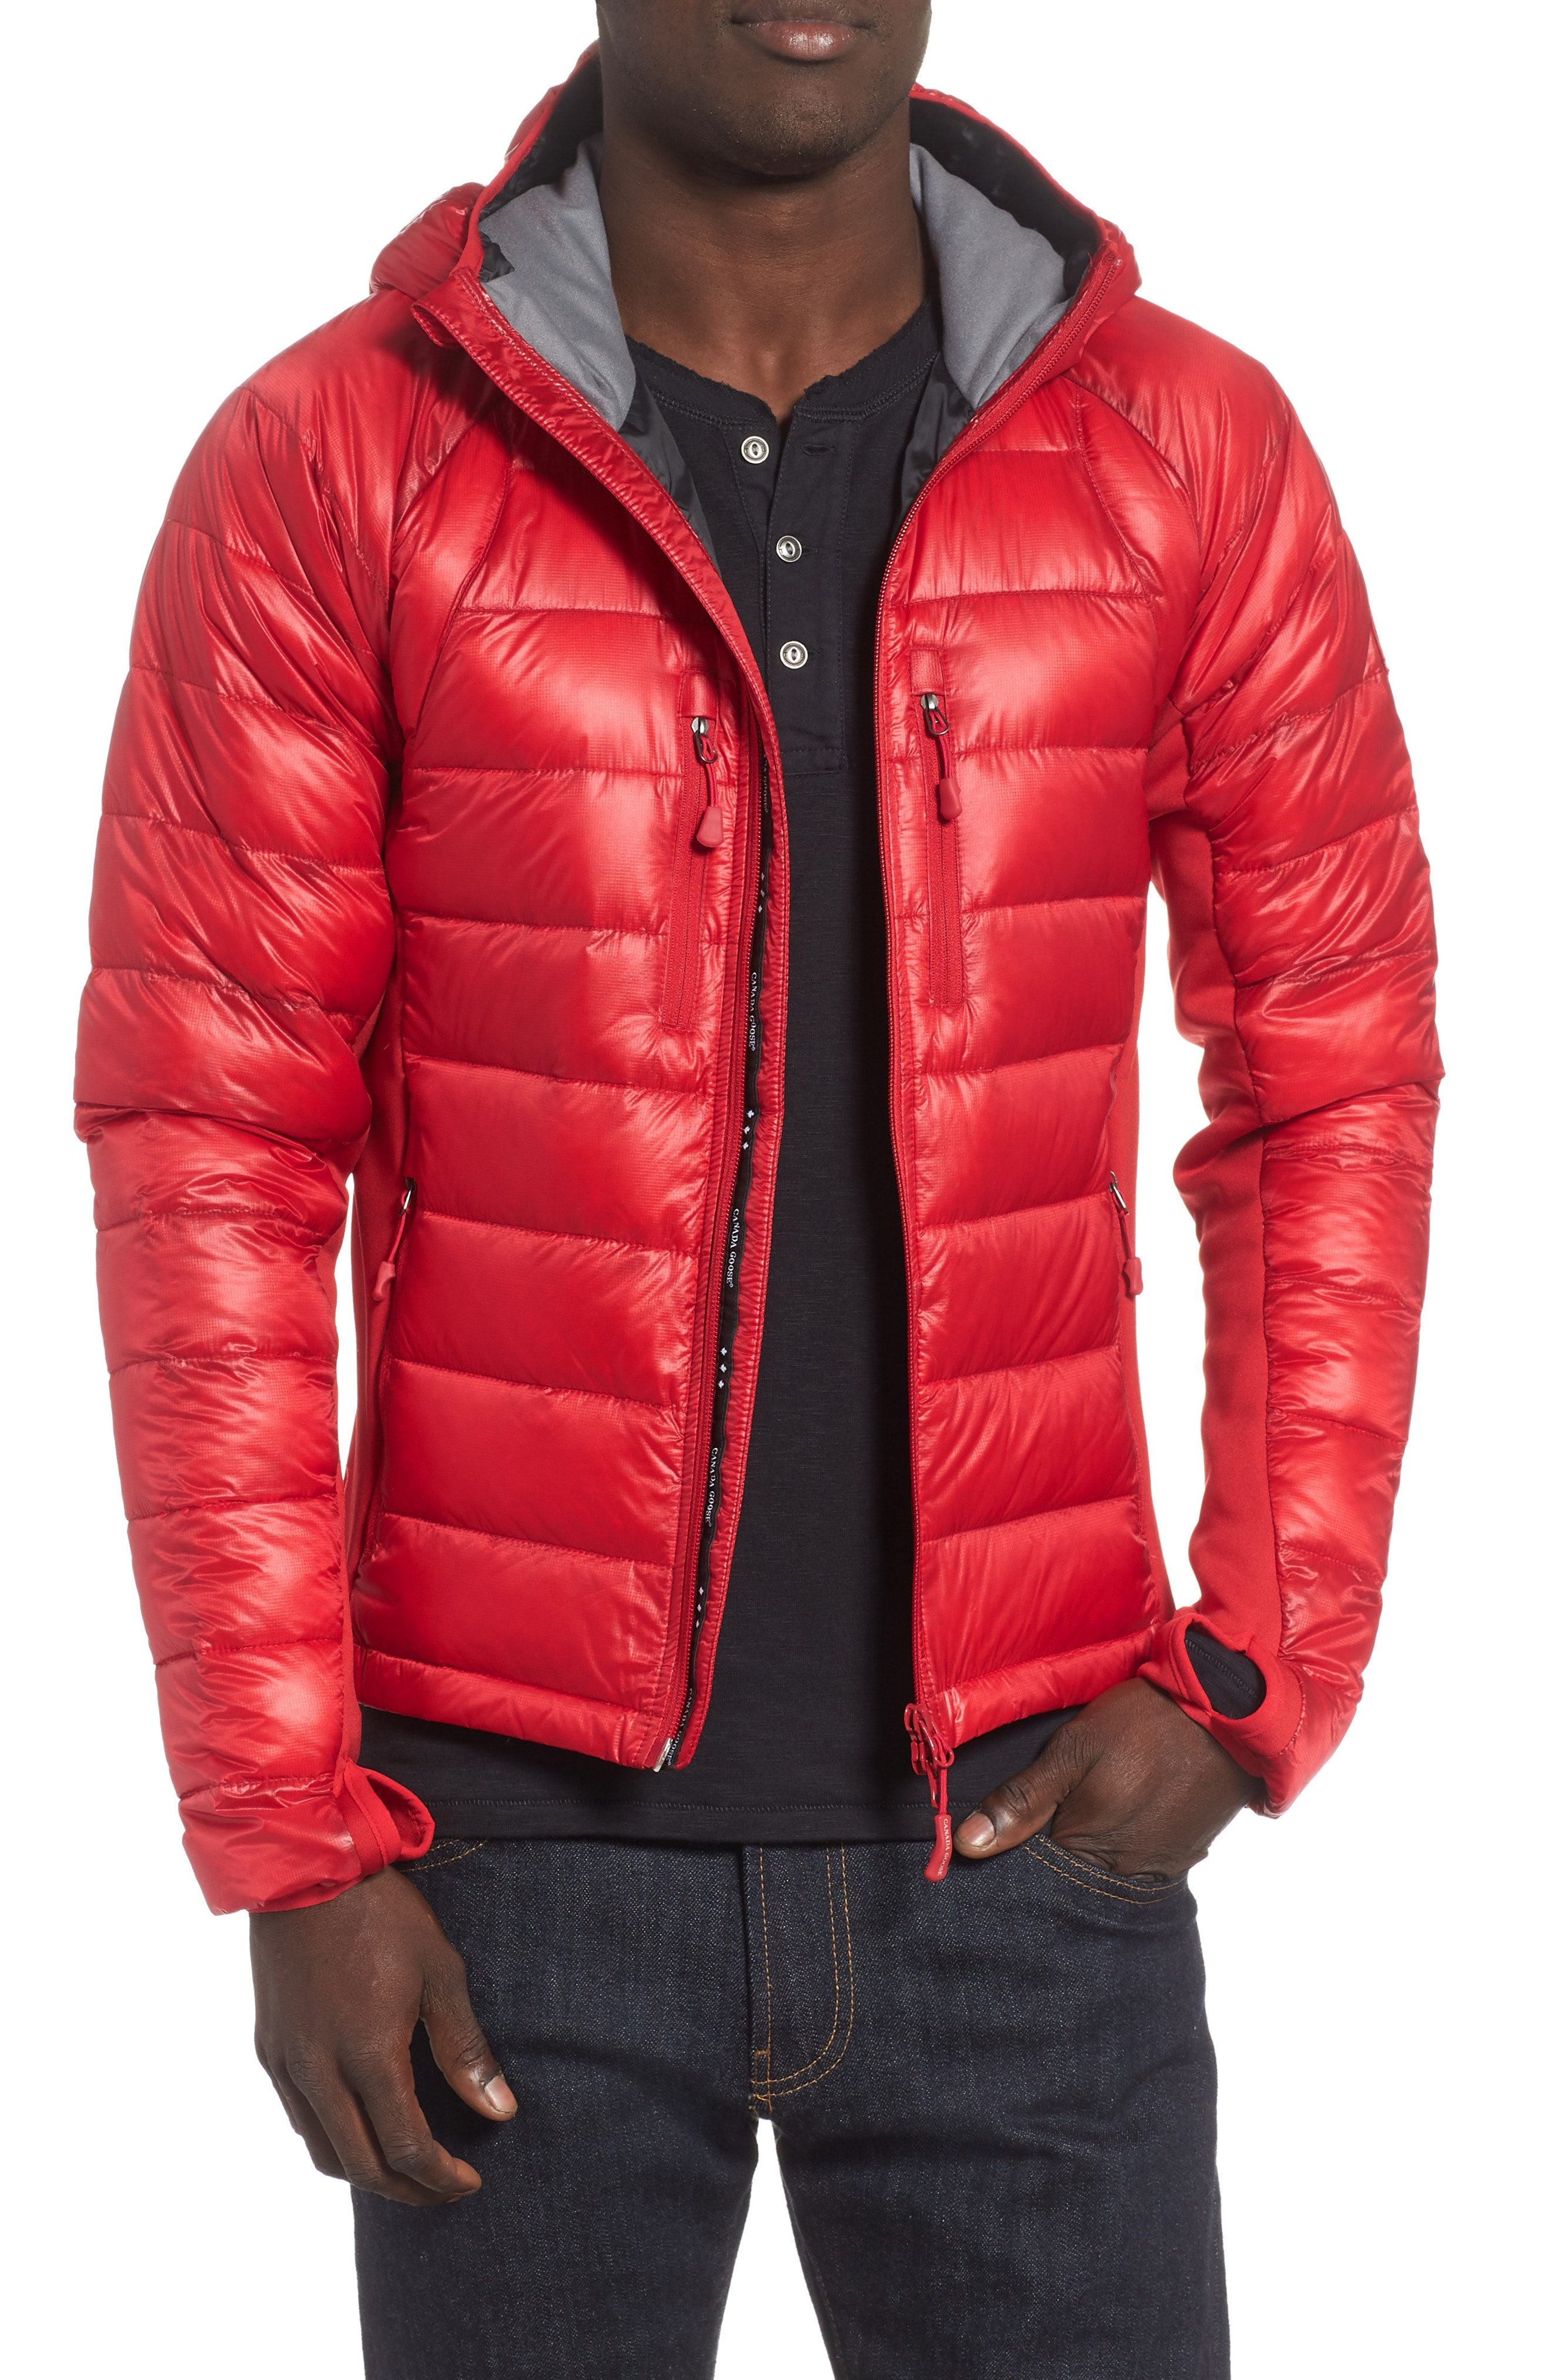 Men's Red Coats & Jackets | Nordstrom